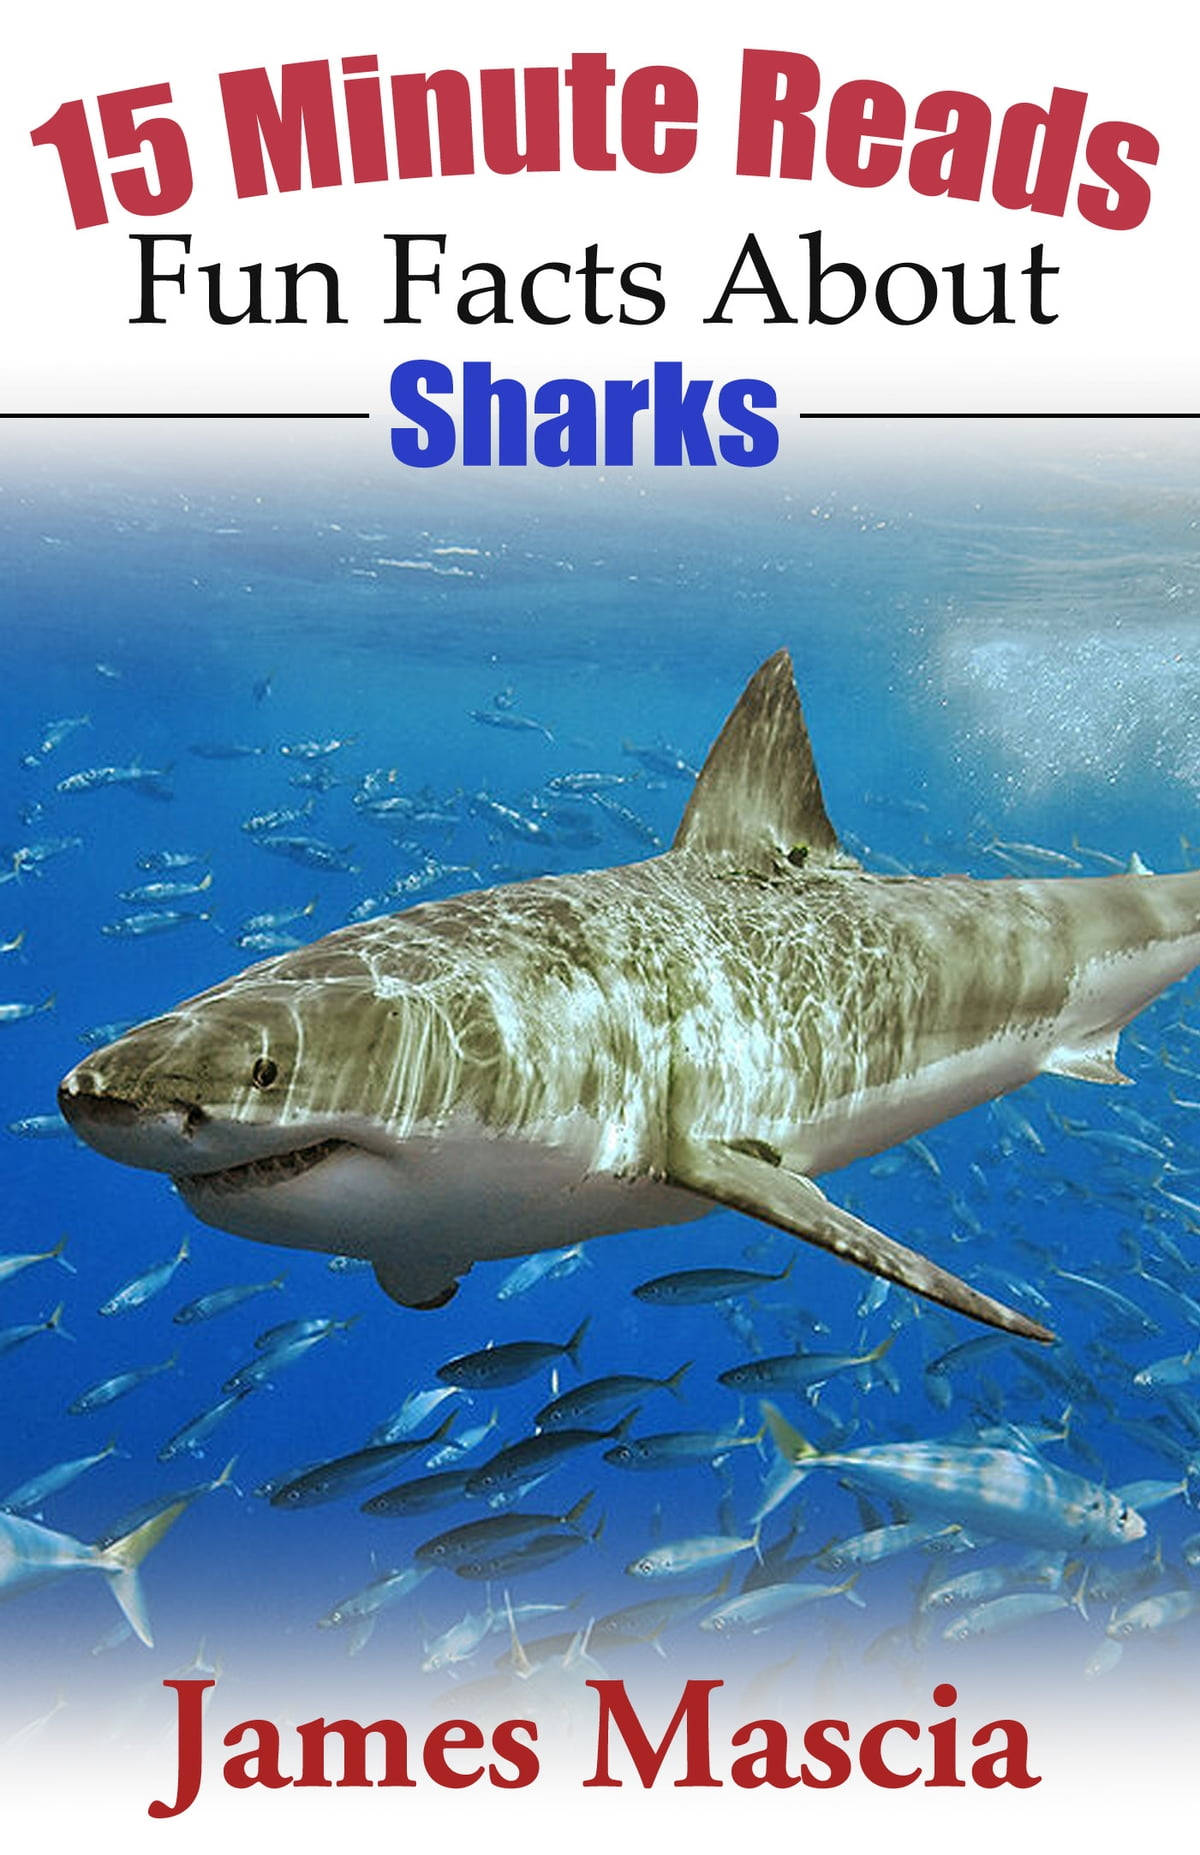 15 Minute Reads Fun Facts About Sharks Ebook By James